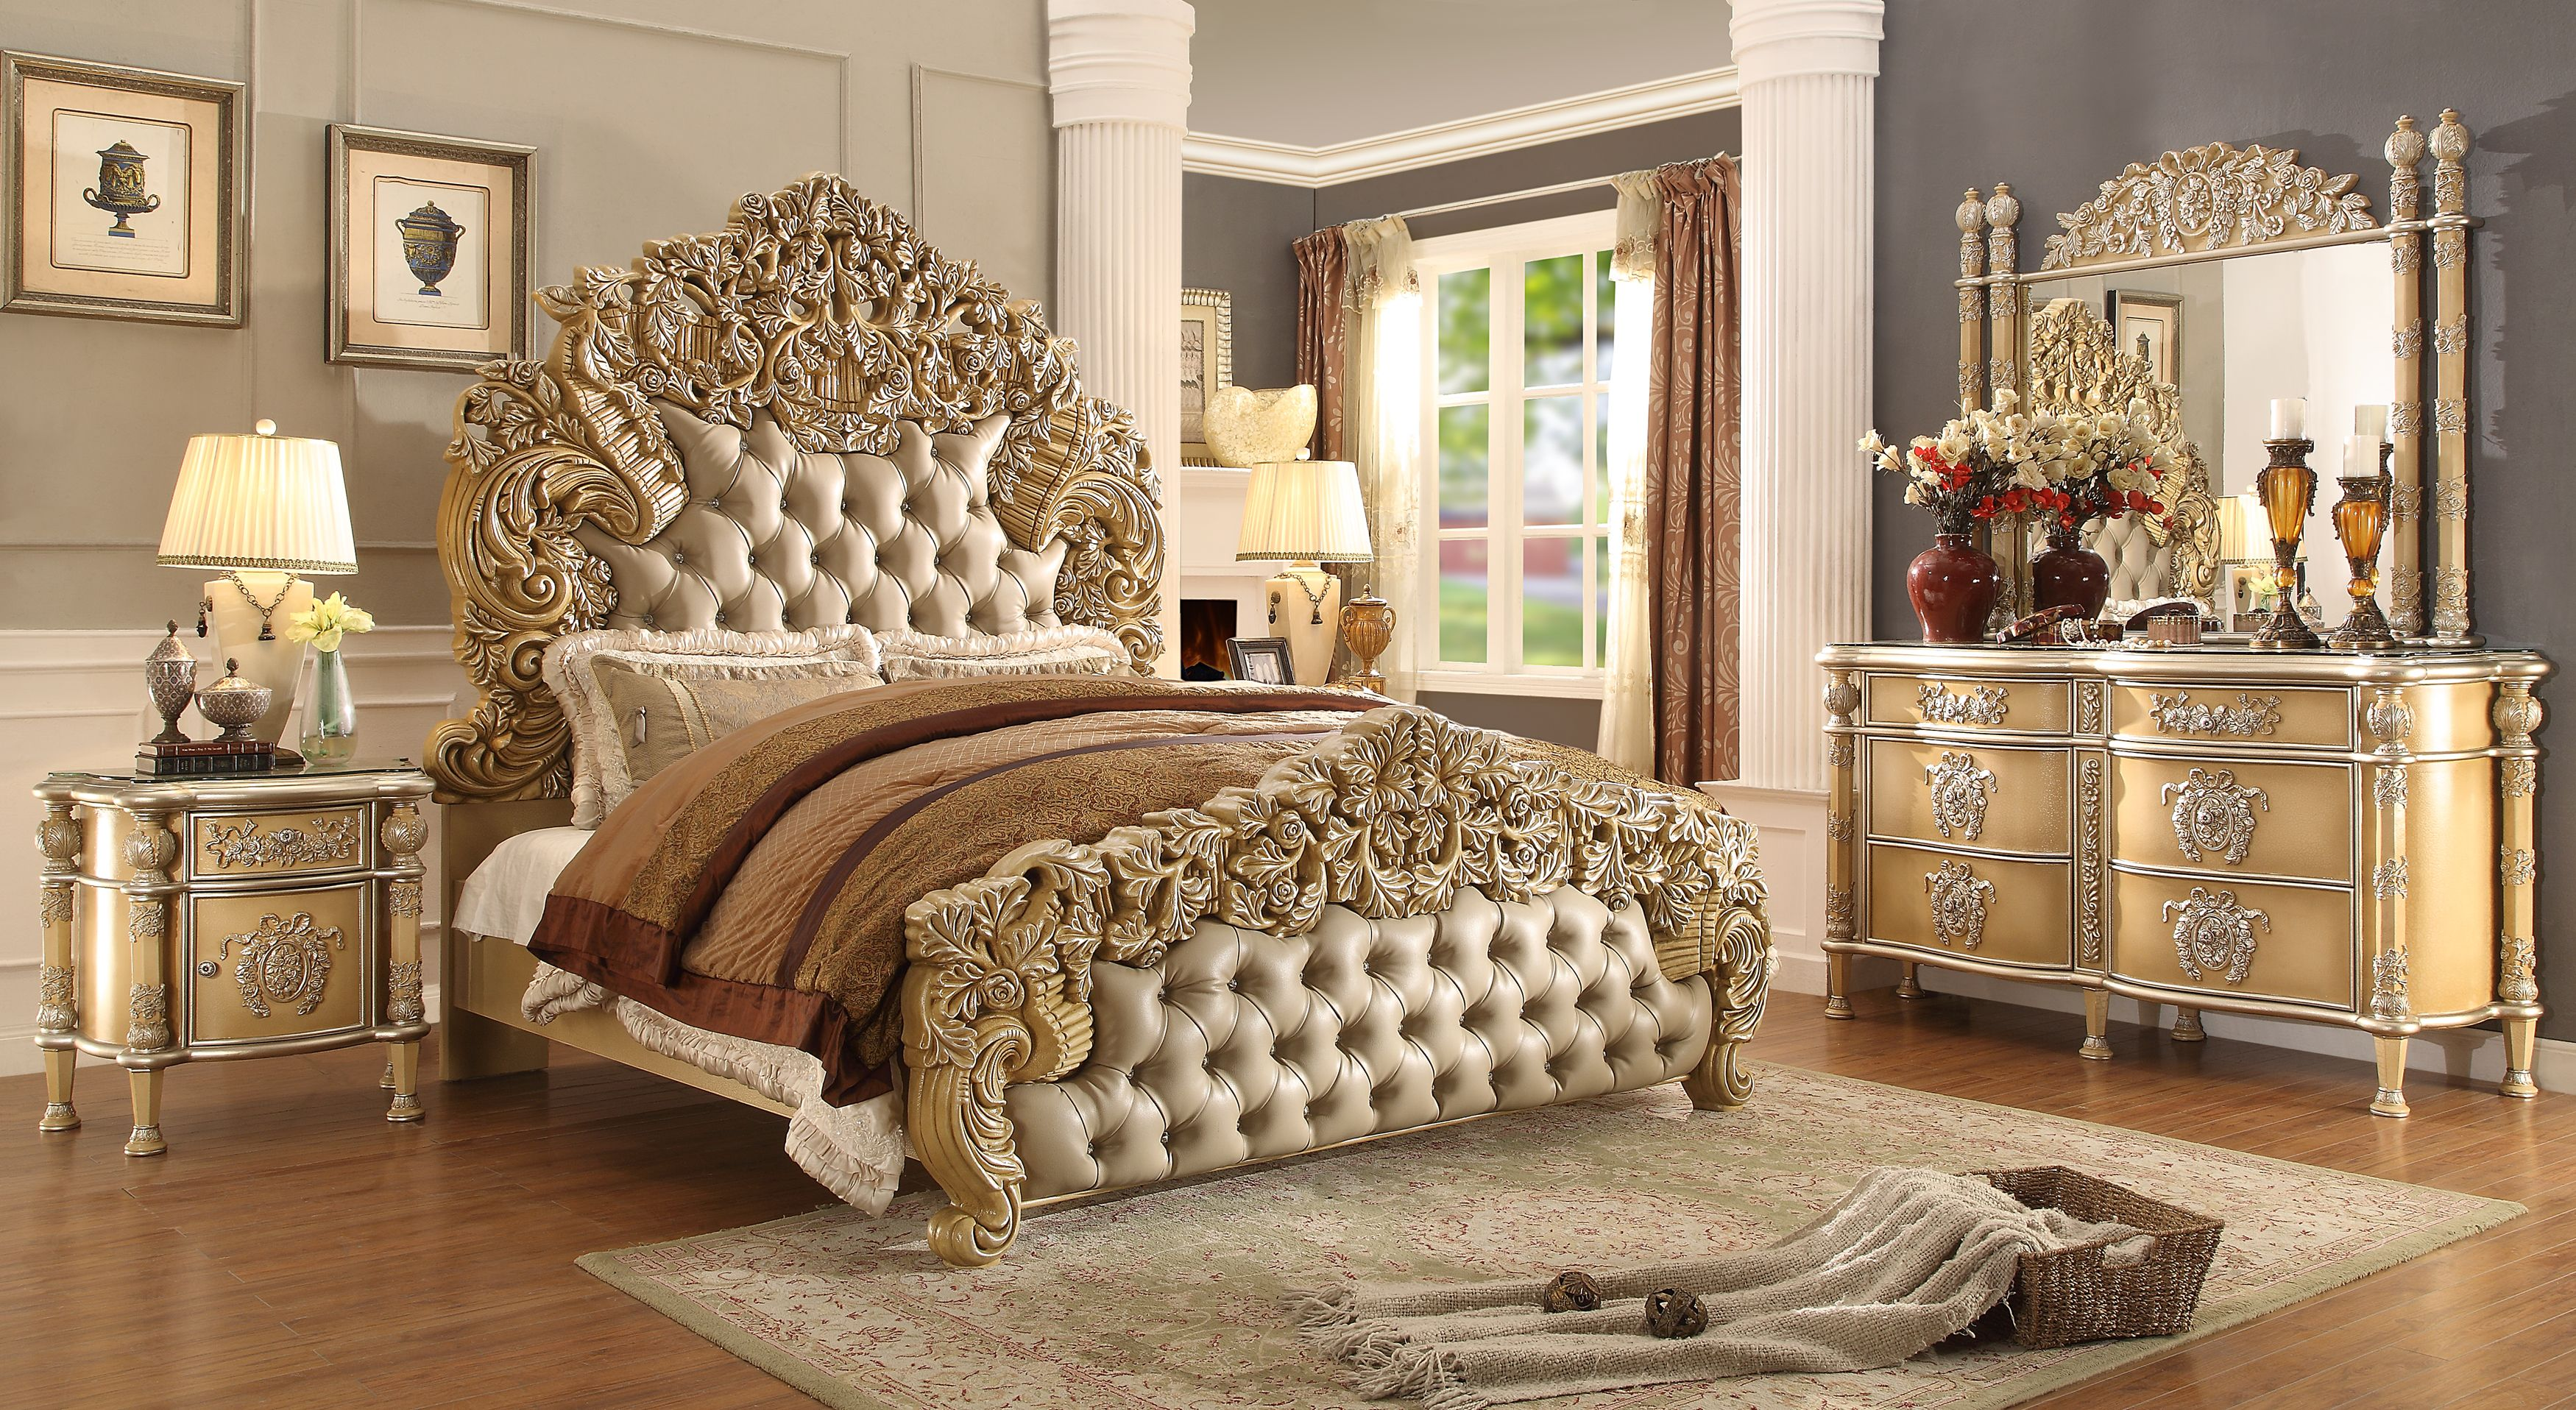 new luxary elegant european button tuft bedroom set king 5 pc hd rh pinterest com